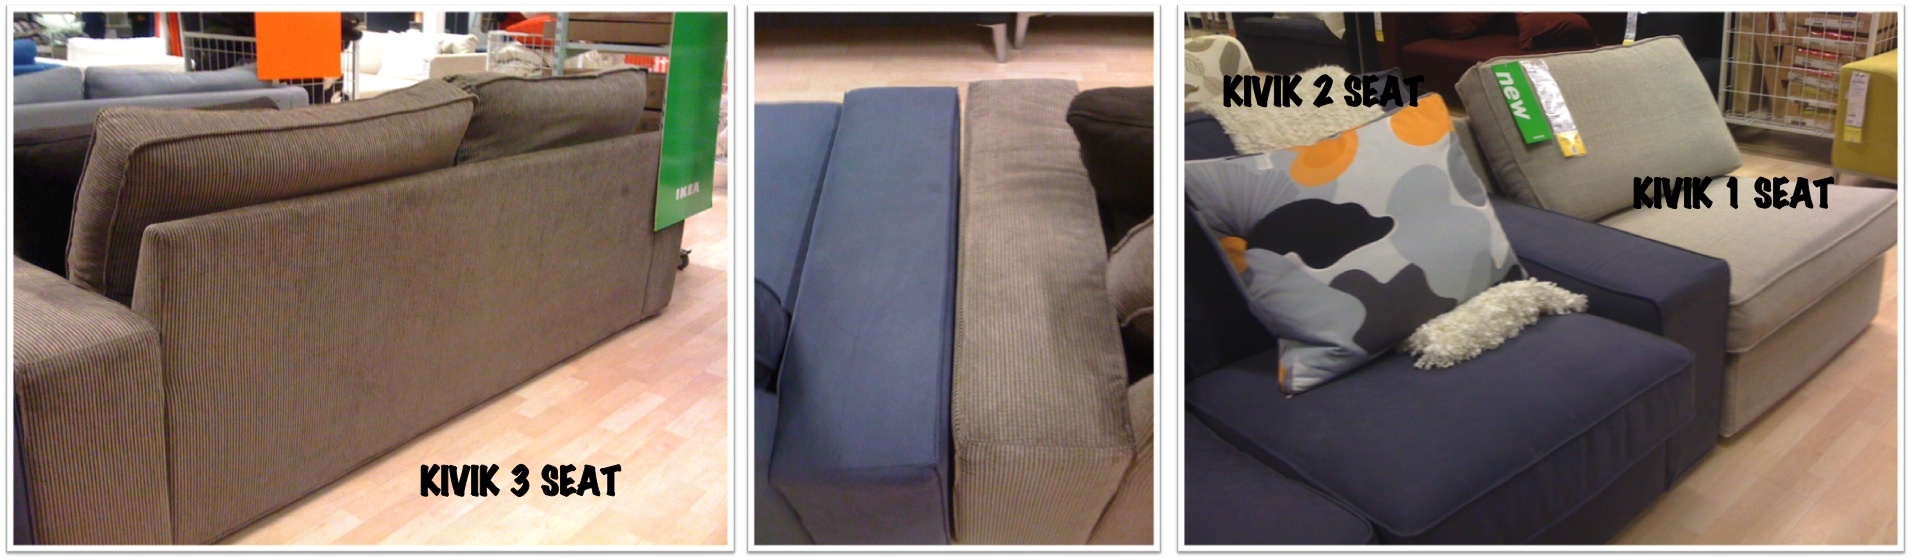 IKEA Kivik Sofa Series Review - Comfort Works Blog ...